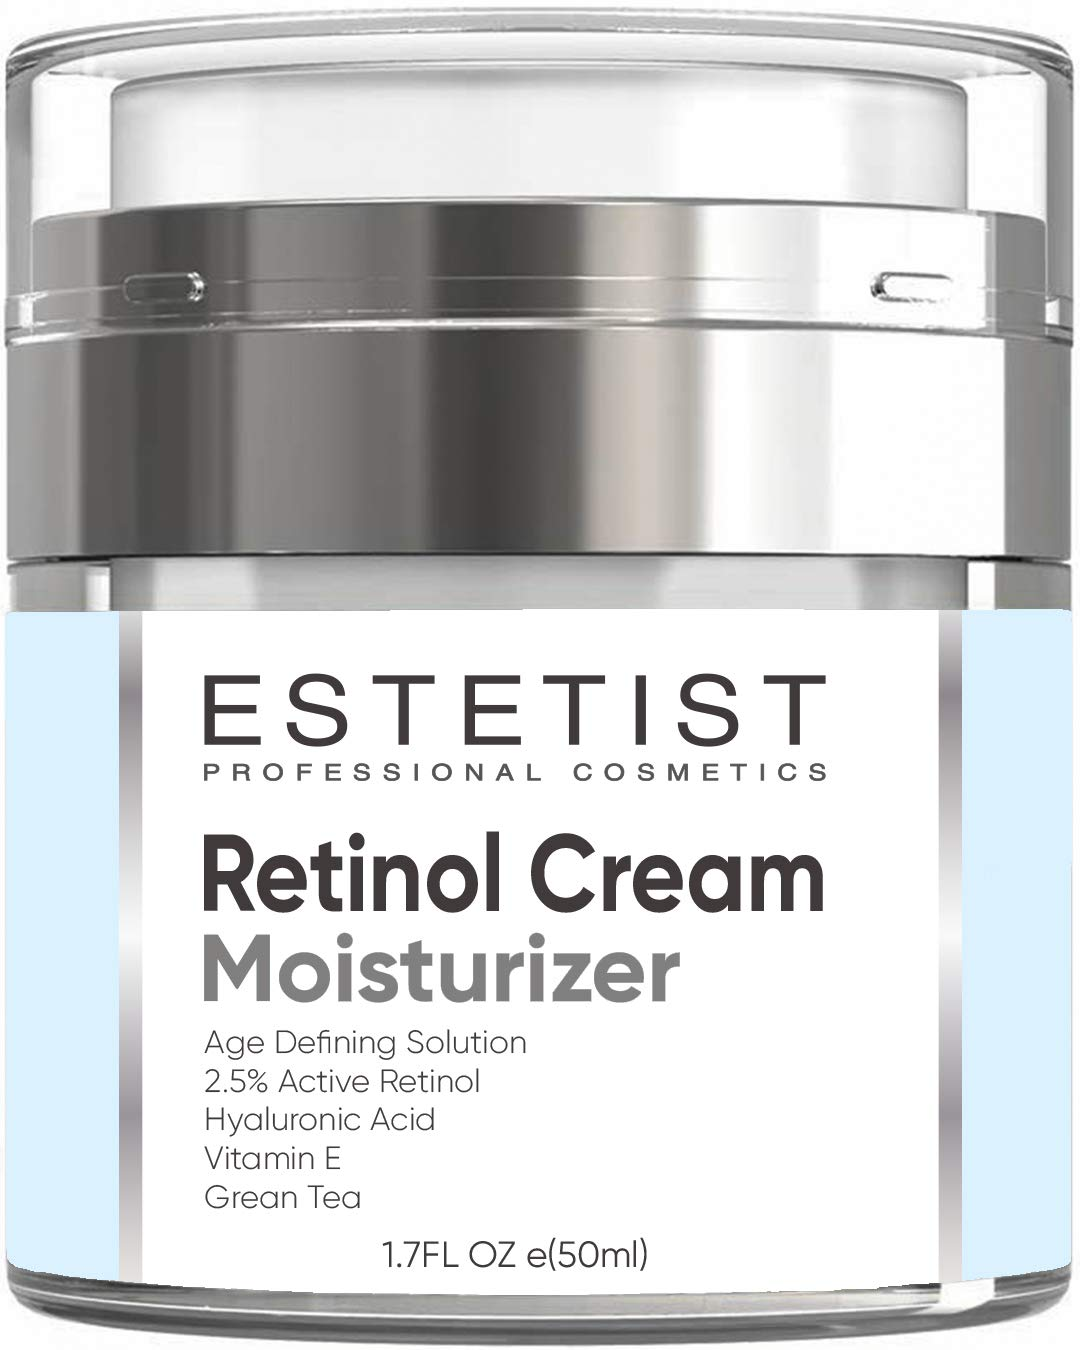 Face Moisturizer Retinol Cream for Day & Night with Hyaluronic Acid - Best Facial Age Defying Solution for Anti Aging, Wrinkles & Fine Lines to Restore Elasticity With SPF